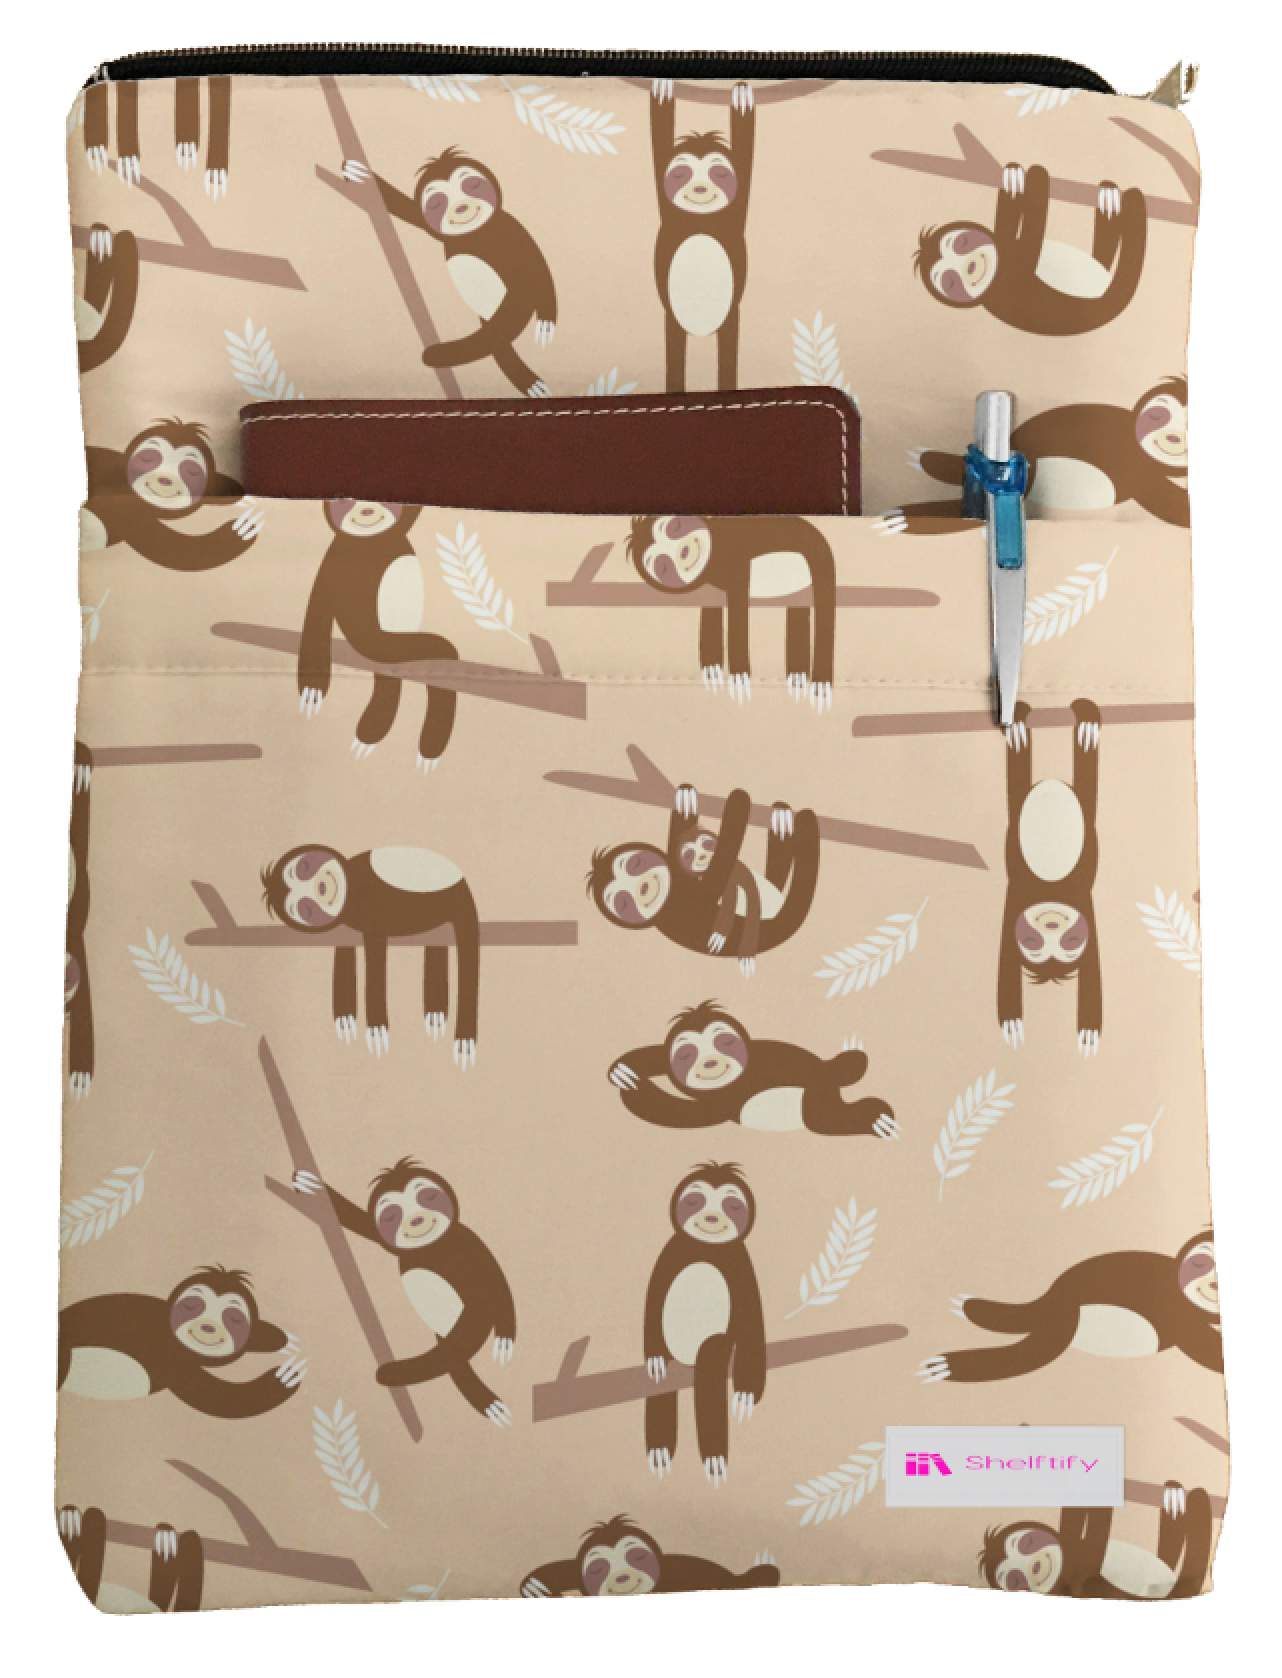 Cute Sloths Book Sleeve - Book Cover For Hardcover and Paperback - Book Lover Gift - Notebooks and Pens Not Included